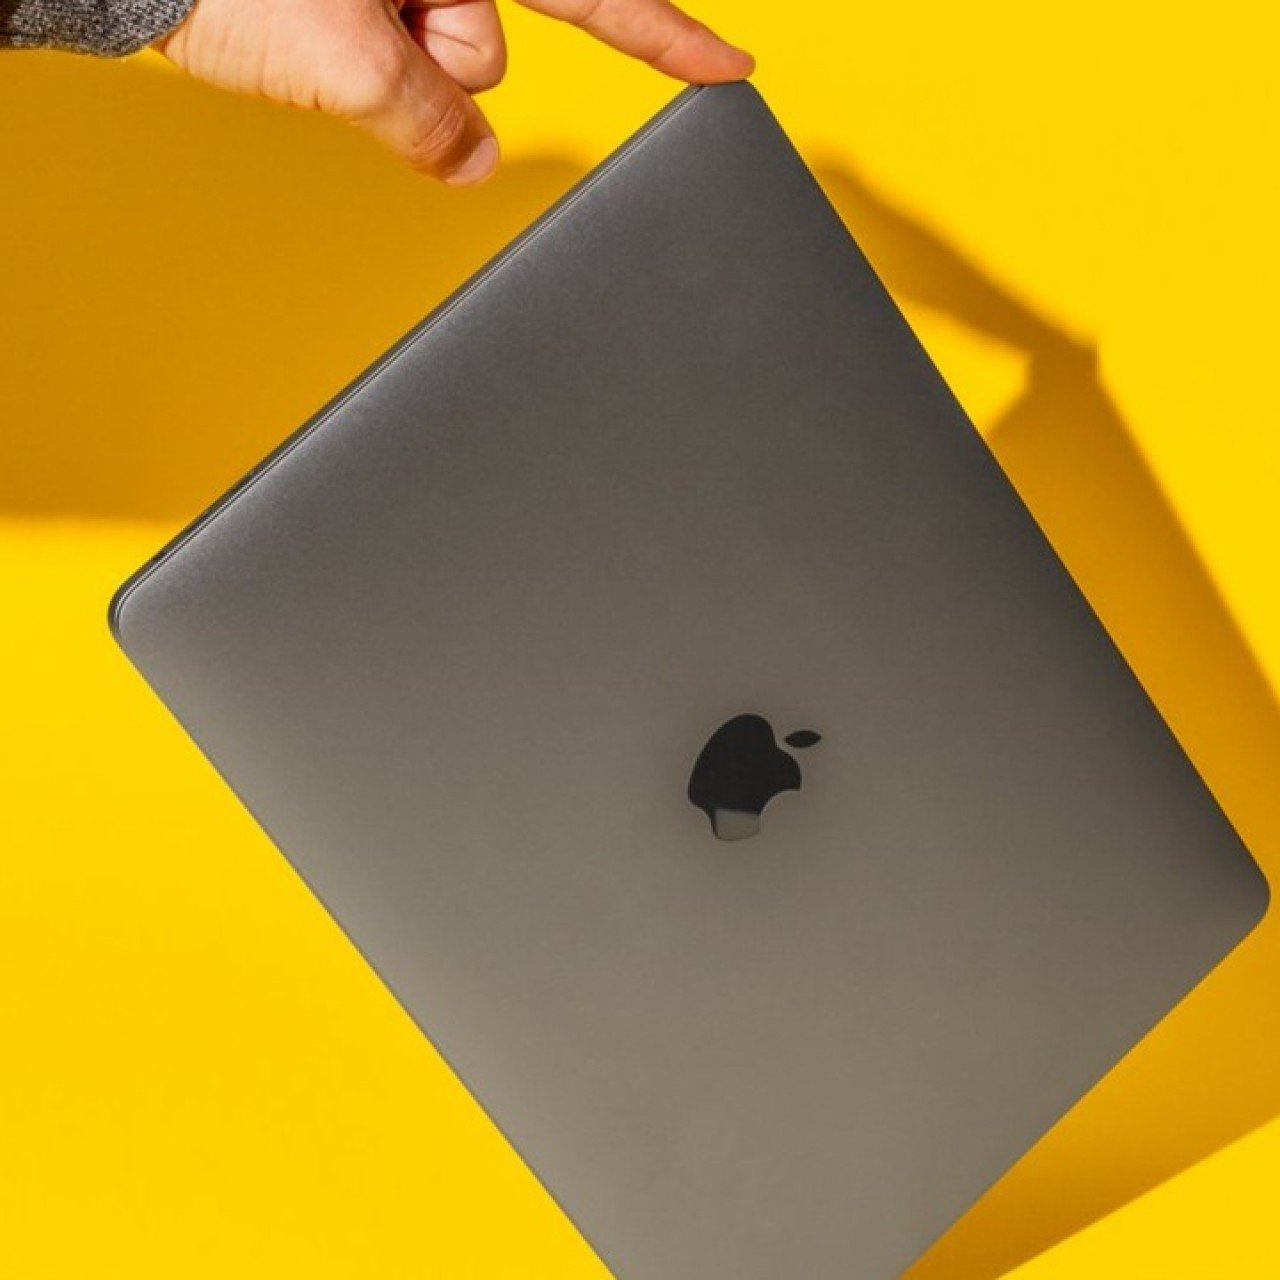 Used Apple Computers >> I Ve Used Apple Computers My Entire Life But Here S Why I M Never